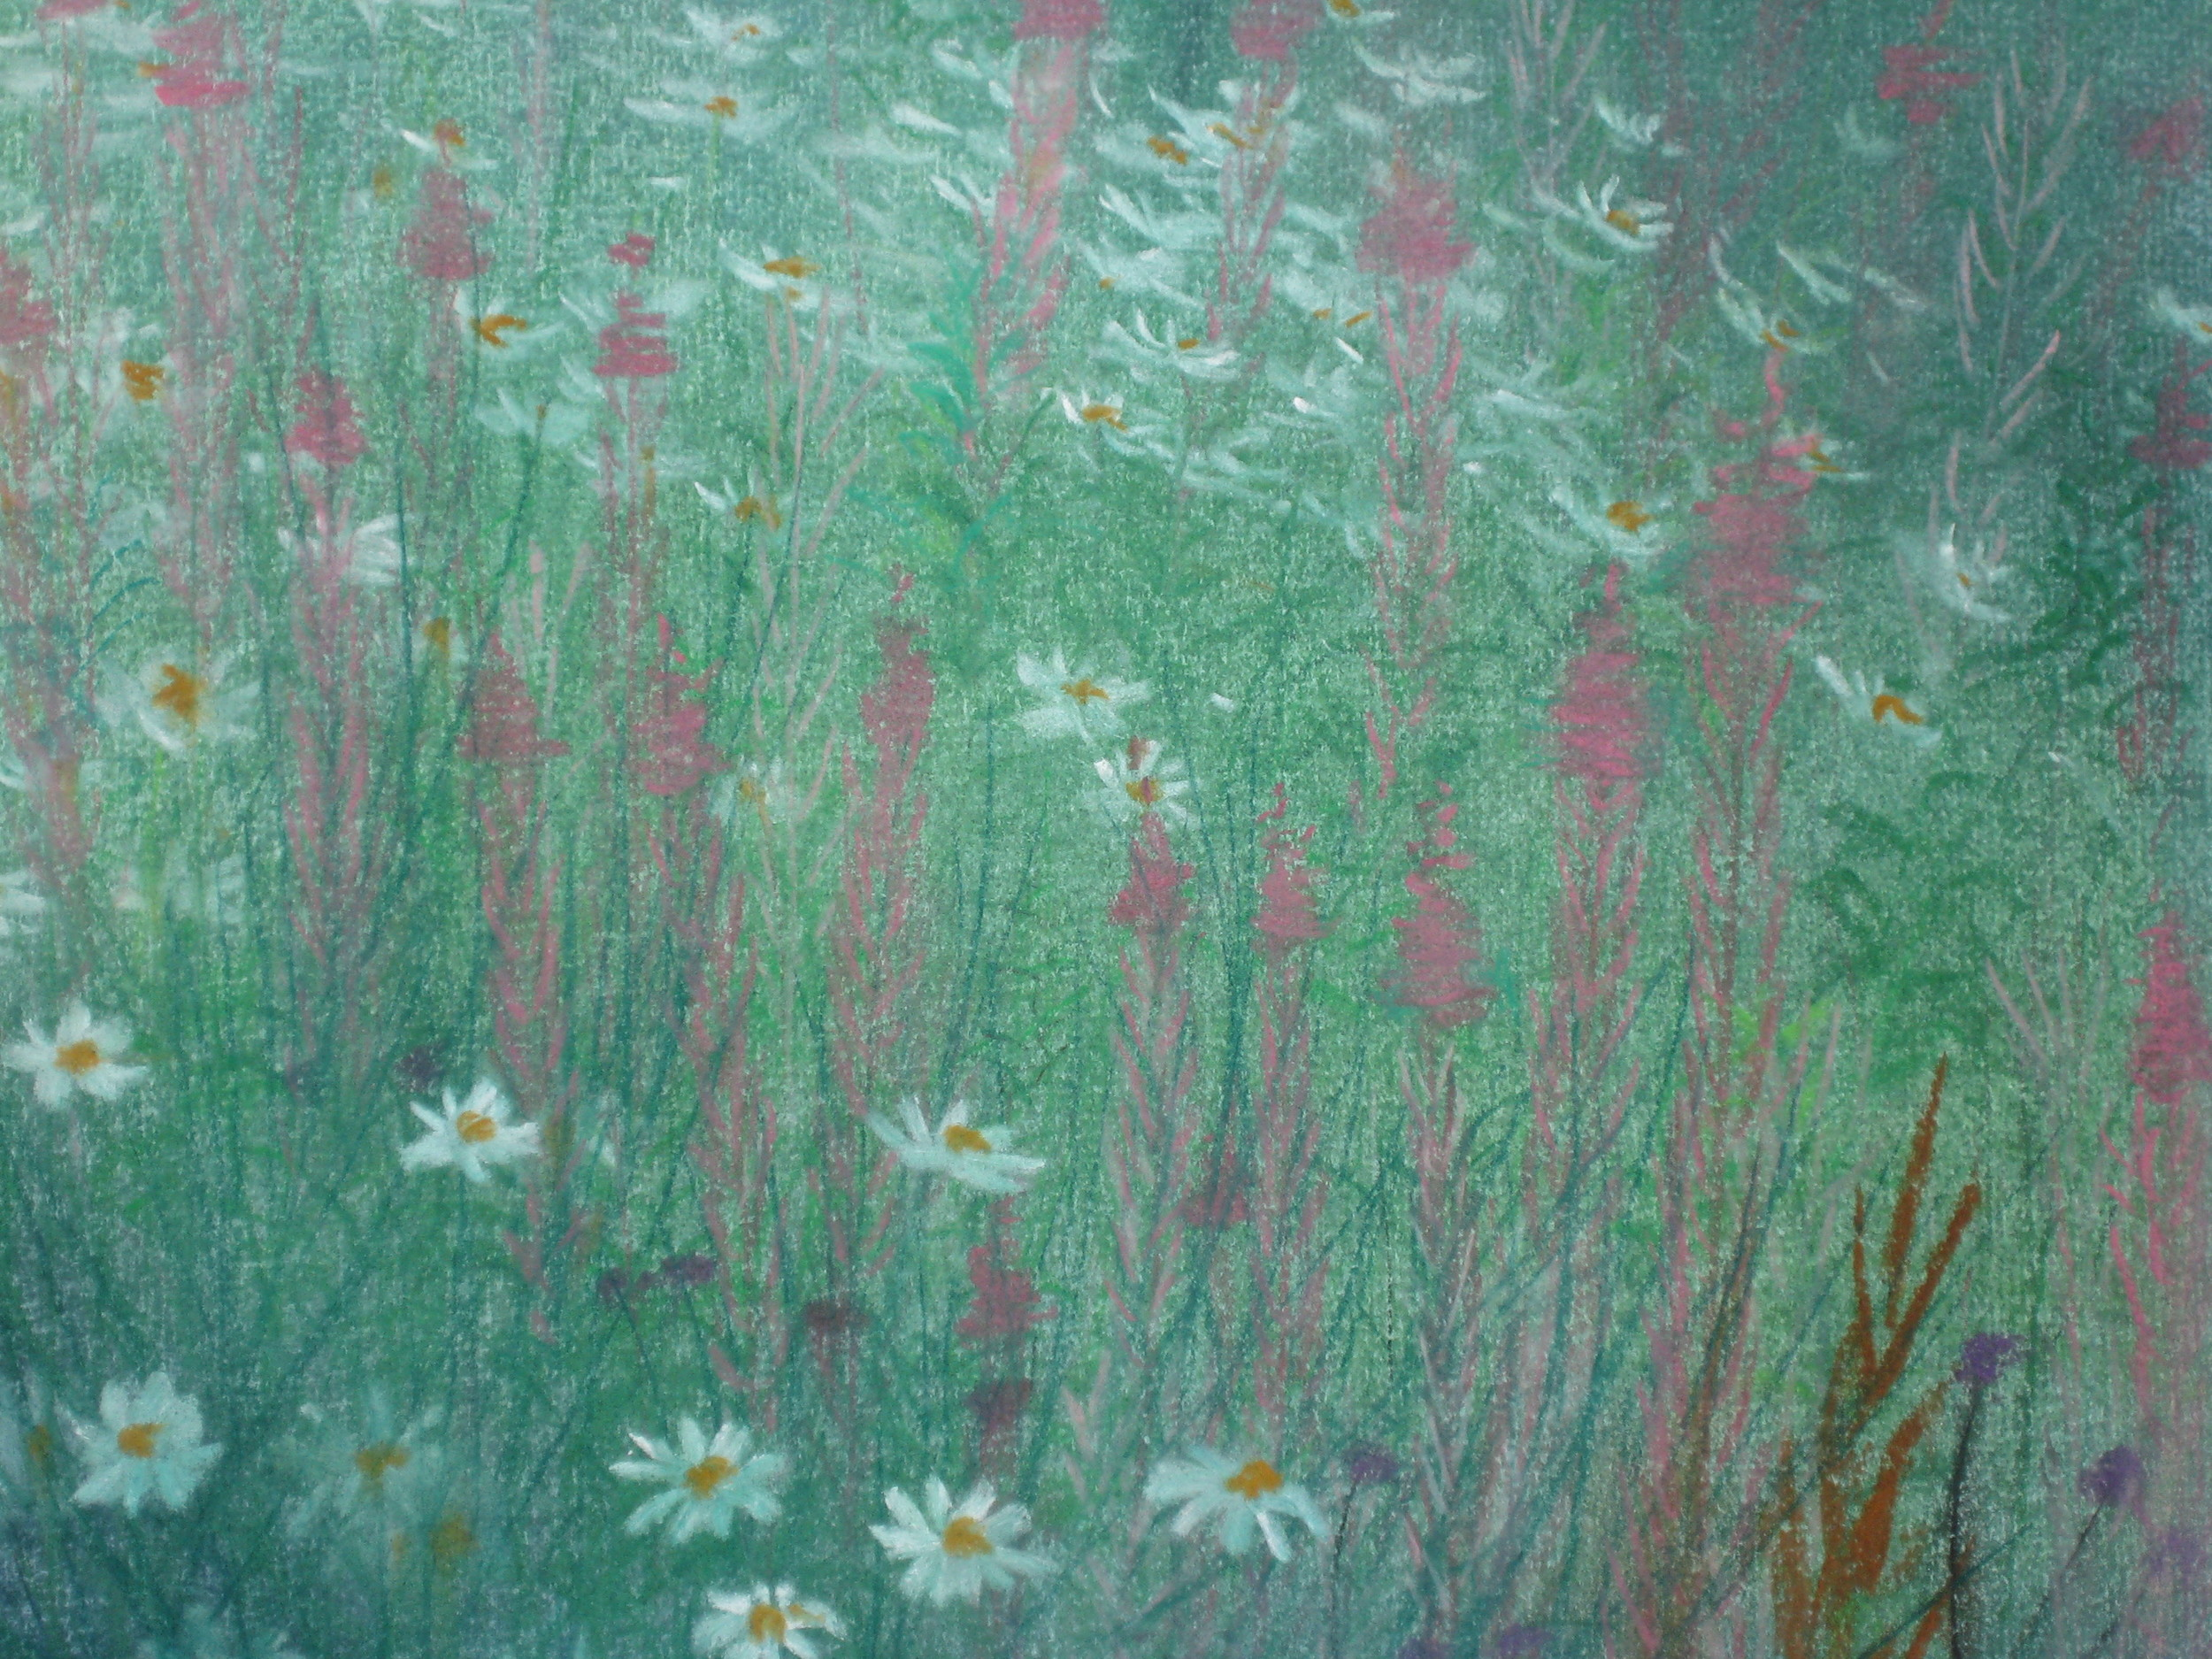 Daisy and Rosebay Willowherb